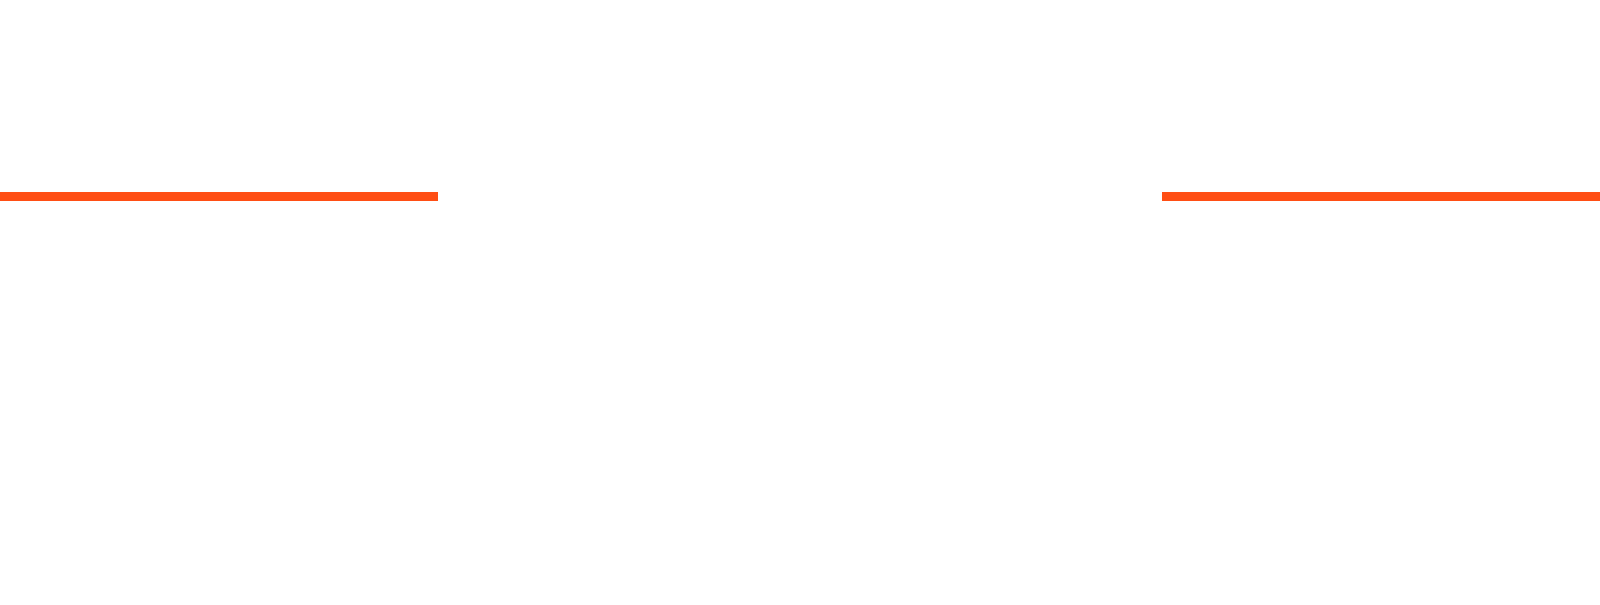 Finish Strong - Innovation That Sells